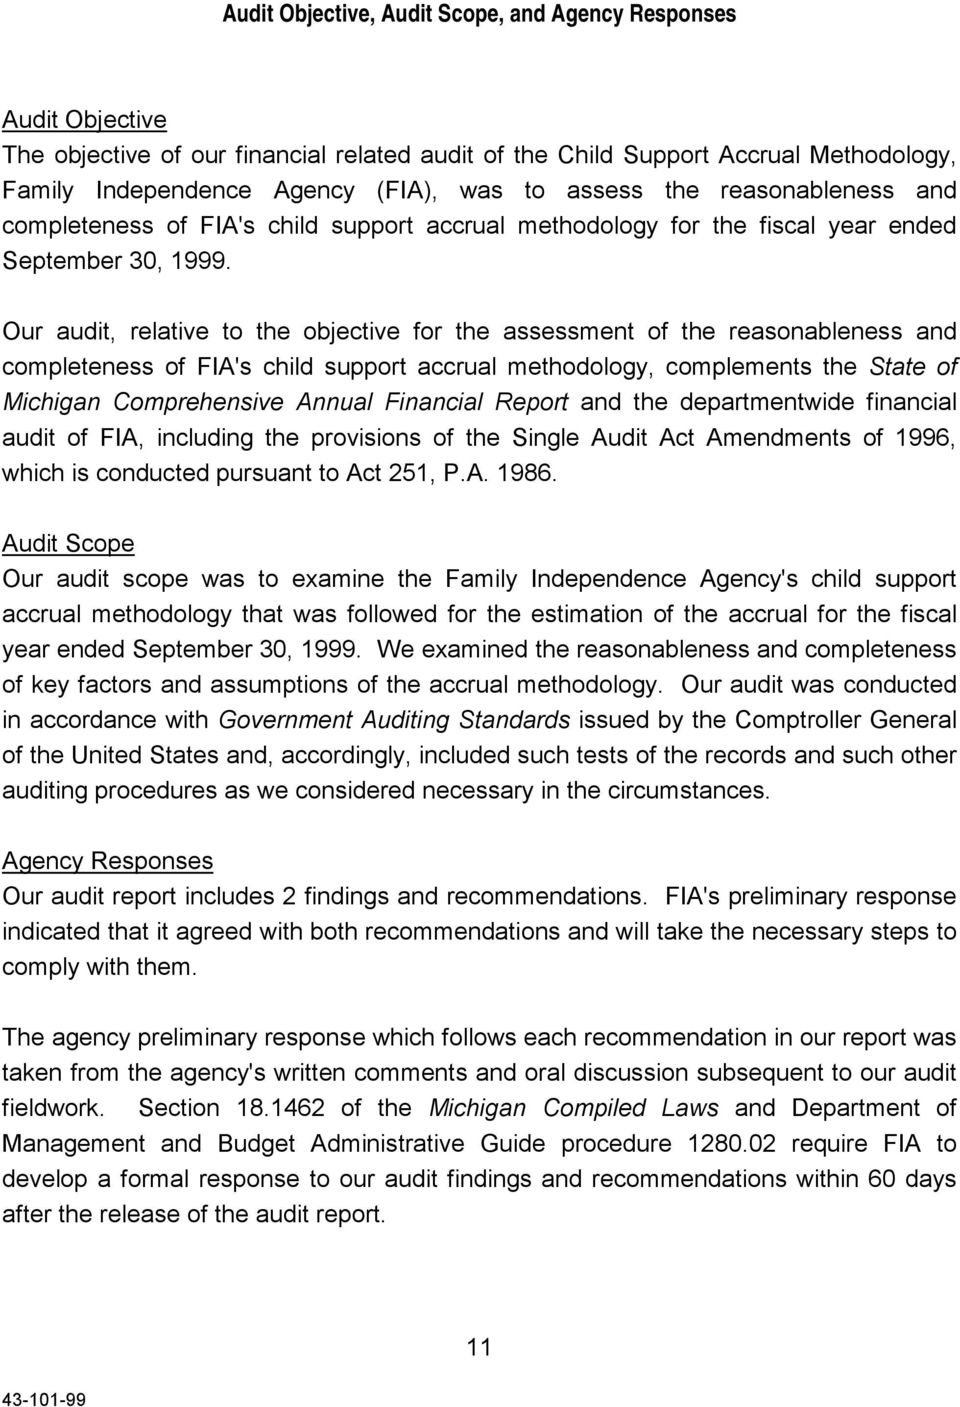 Our audit, relative to the objective for the assessment of the reasonableness and completeness of FIA's child support accrual methodology, complements the State of Michigan Comprehensive Annual